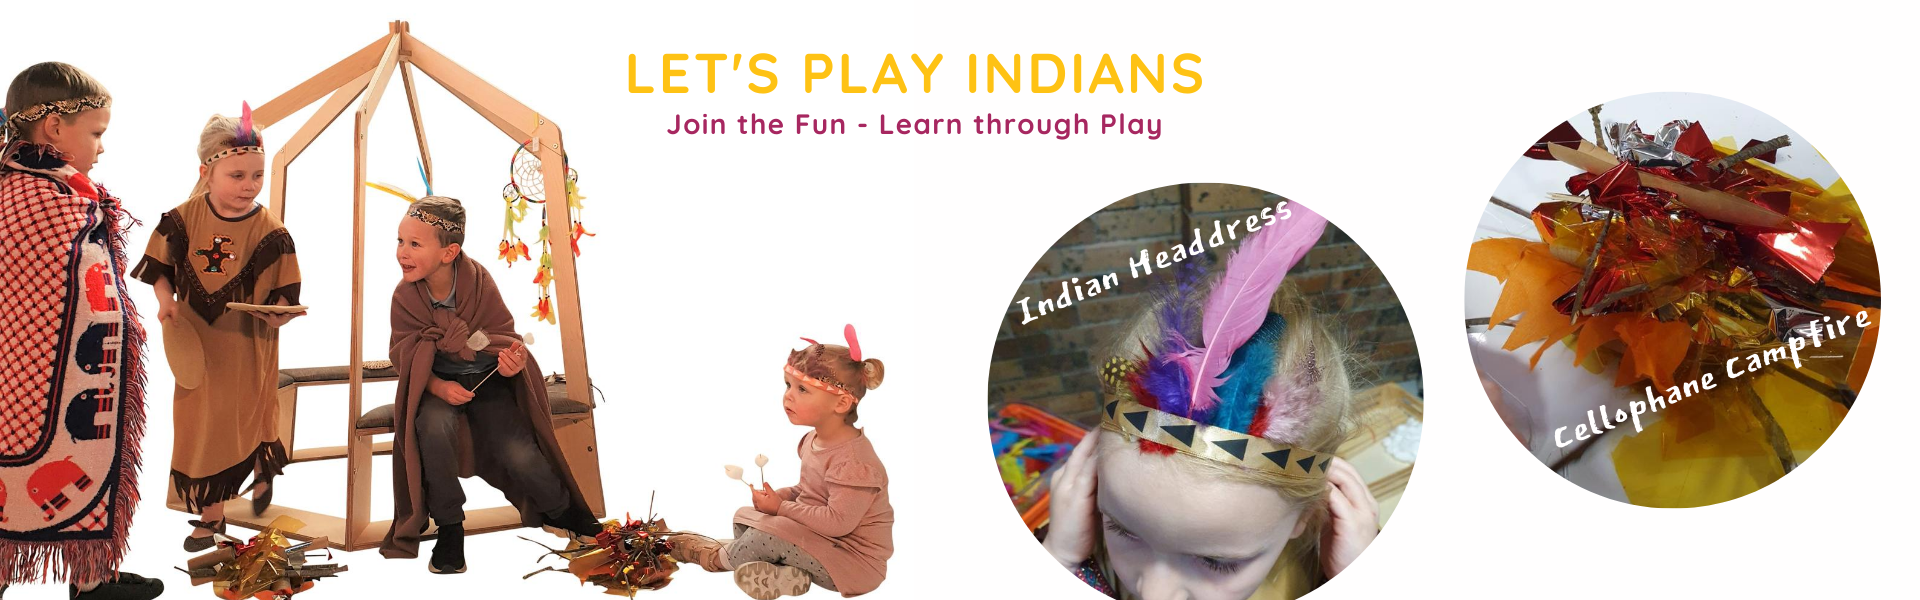 Let's play Indians